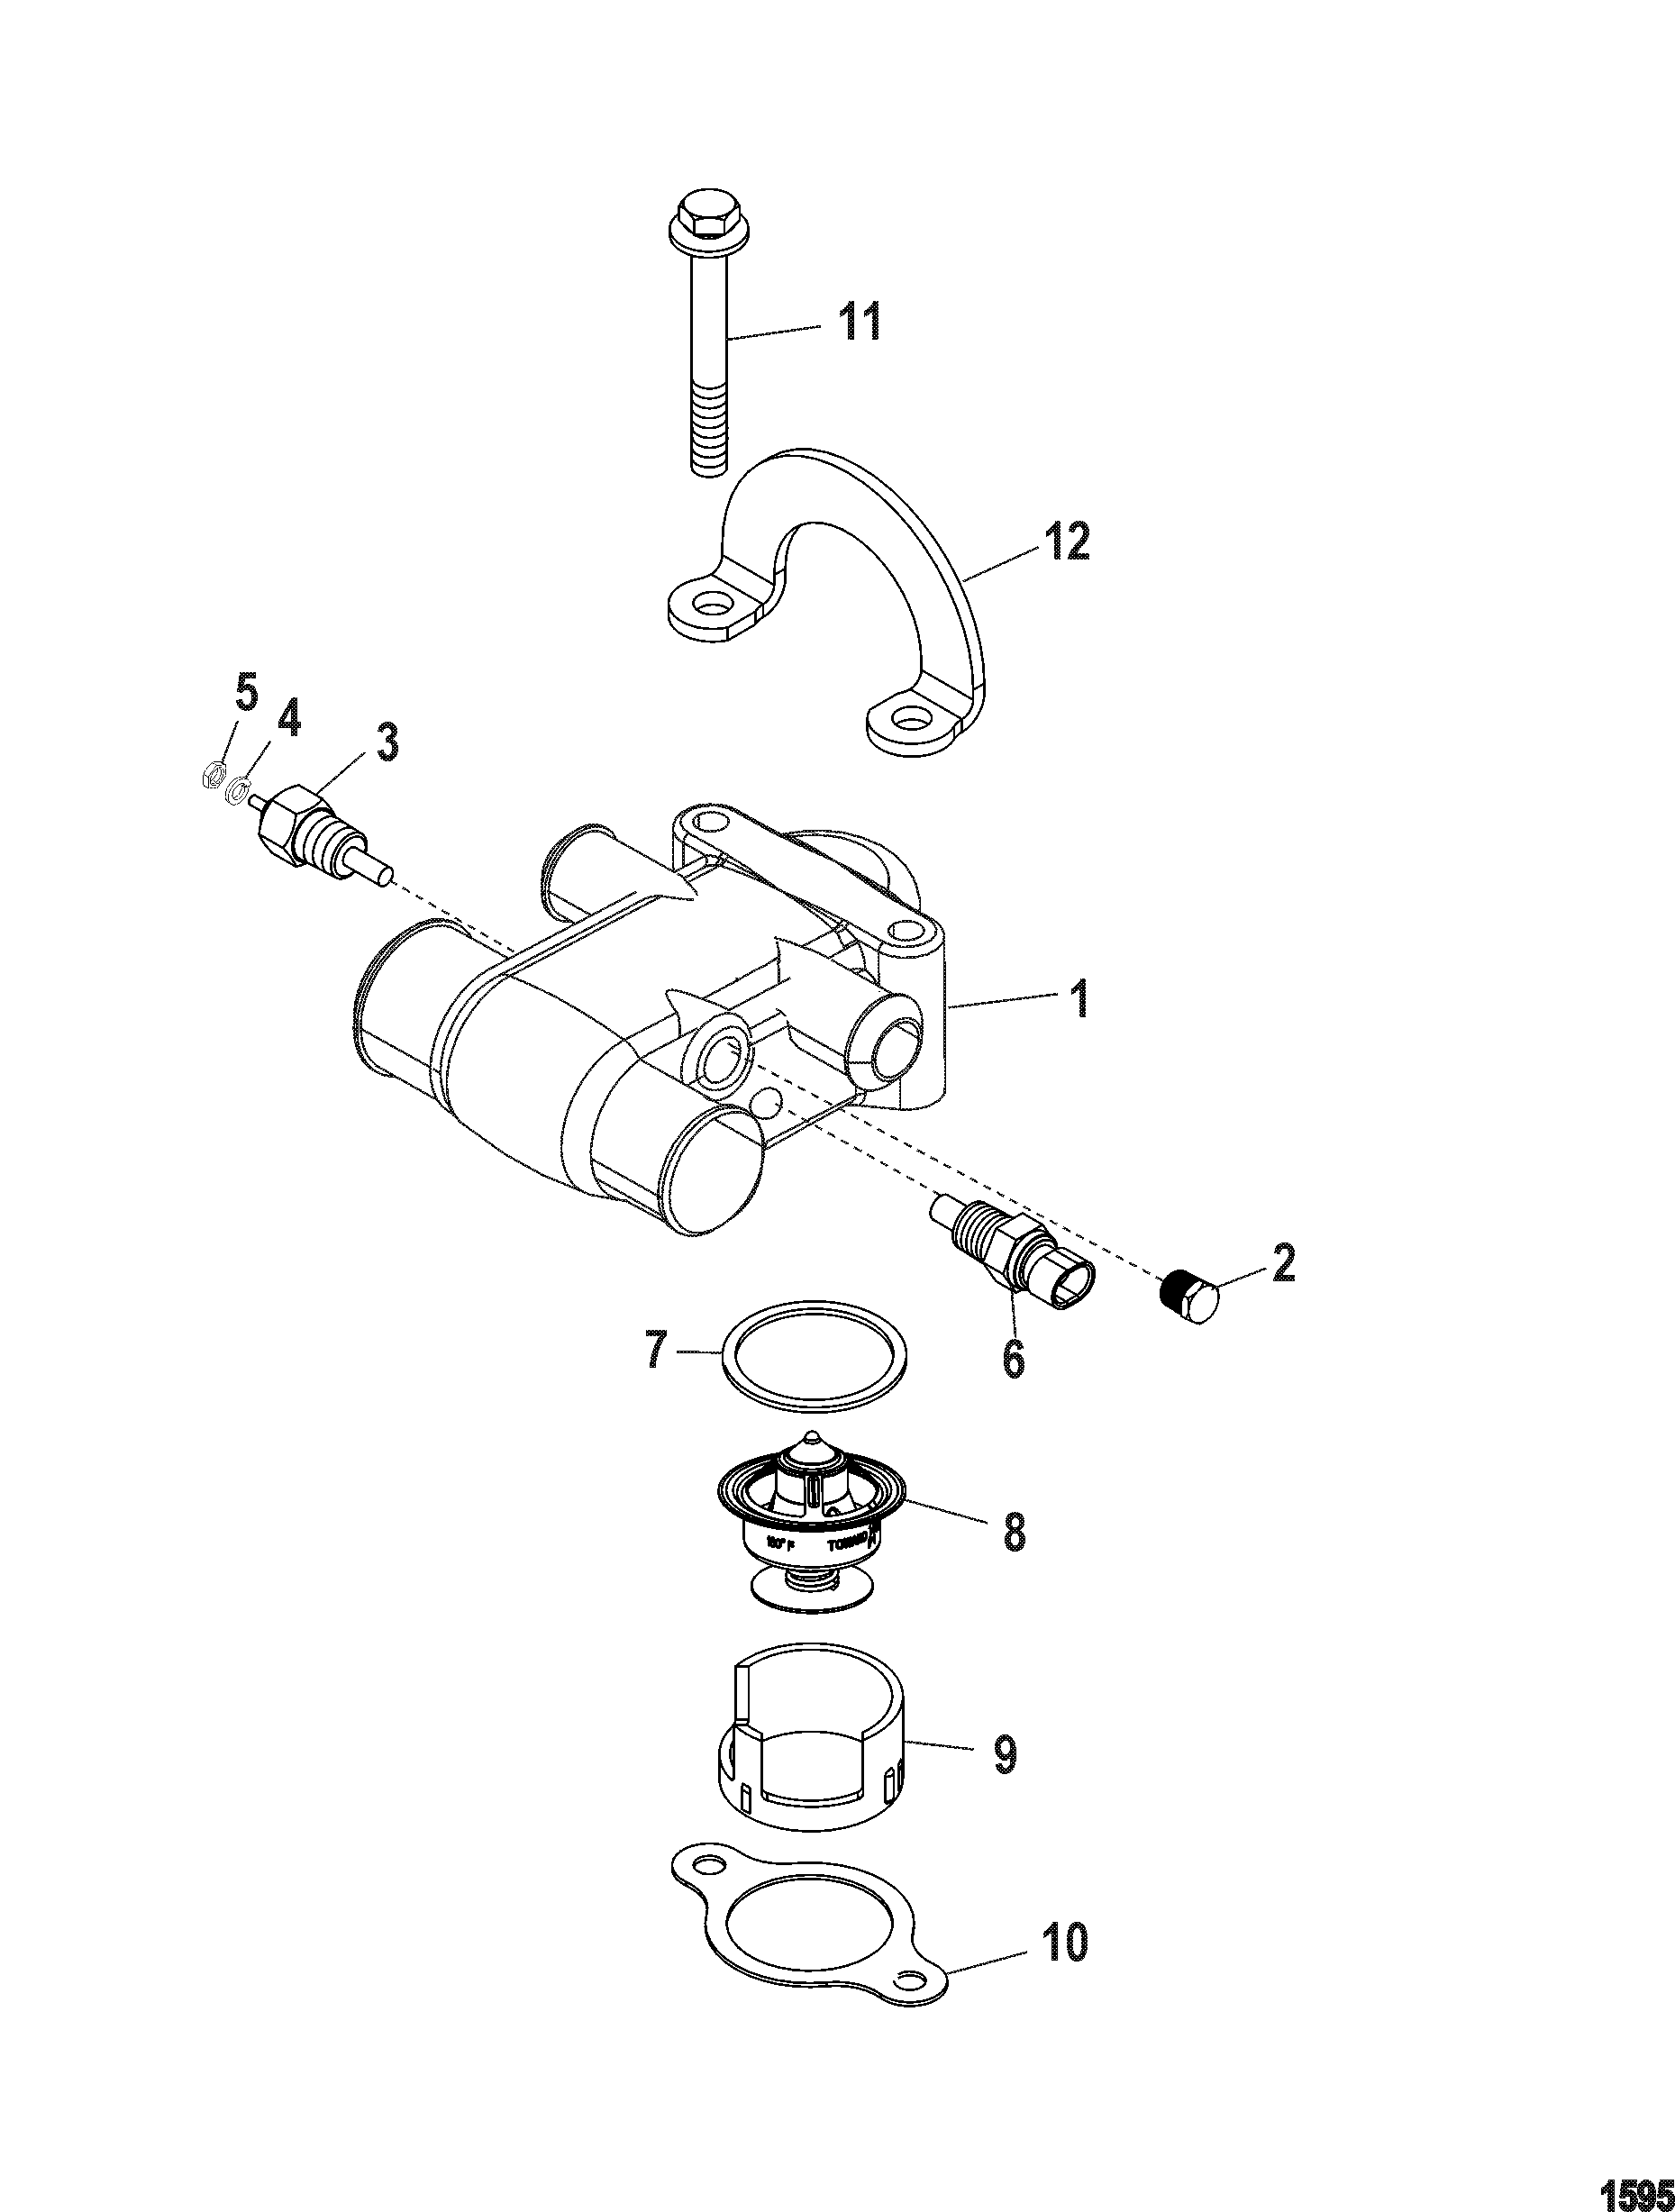 Thermostat And Housing Multi Point Drain For Mercruiser 5